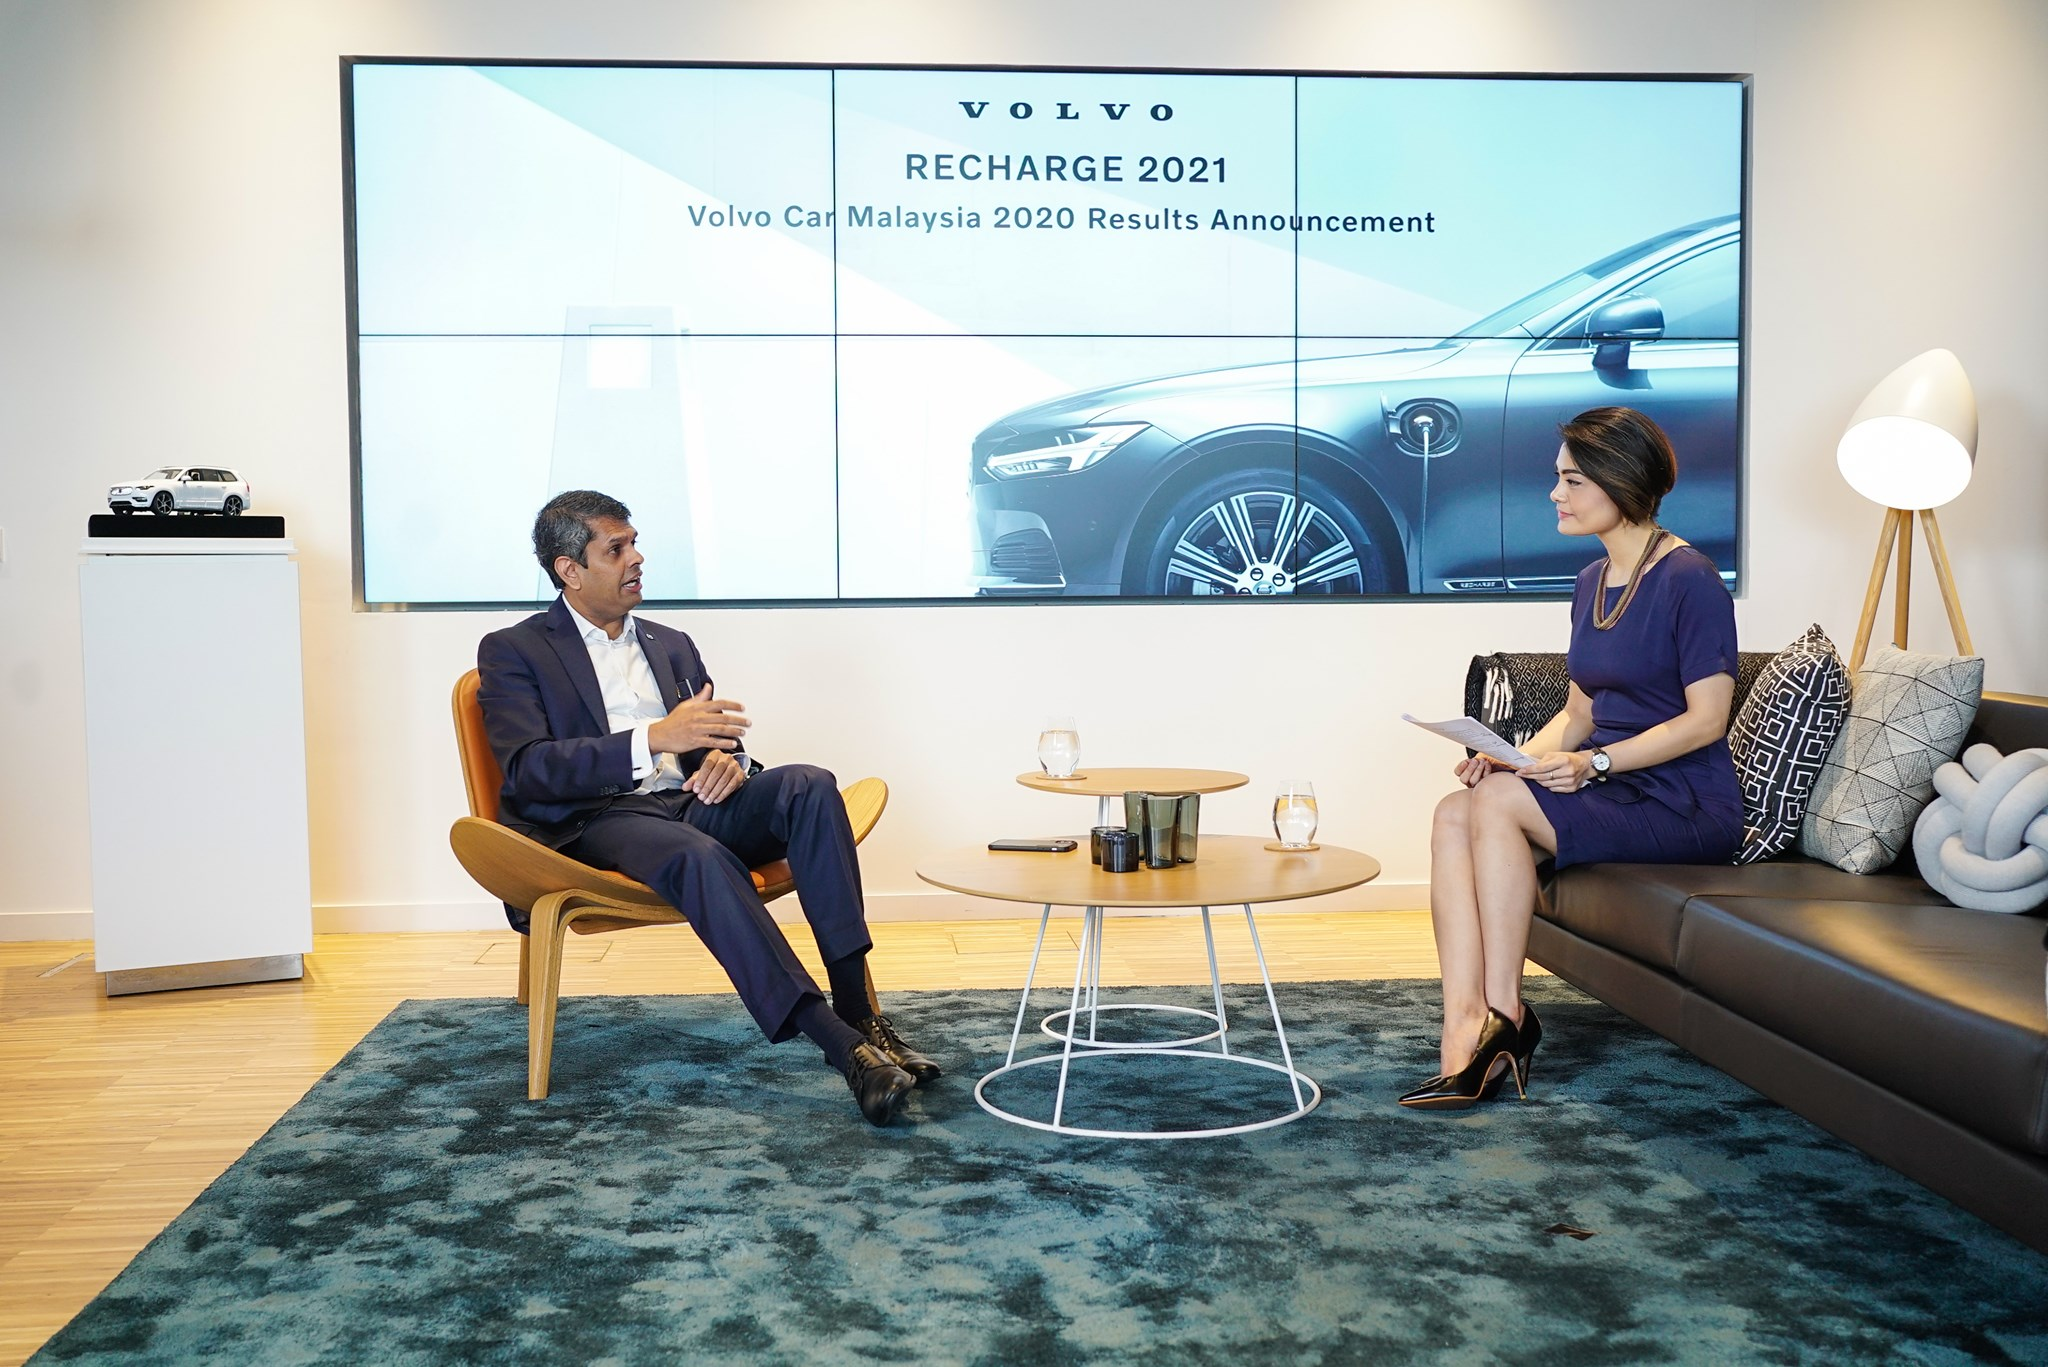 5 highlights on how Volvo Cars Malaysia faced 2020: They actually sold more cars!